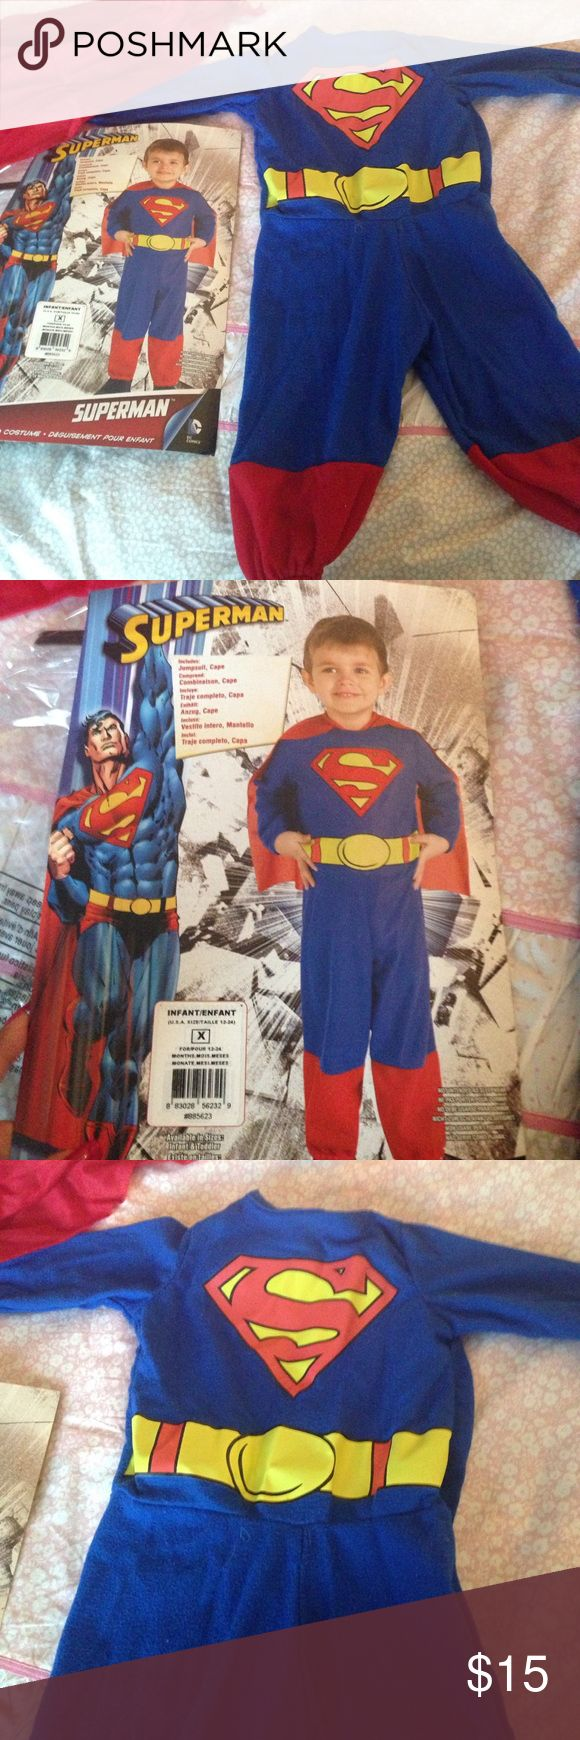 Little Superman Halloween costume Used once for a few photos in great condition. Adorable little superman costume! halloween Costumes Halloween